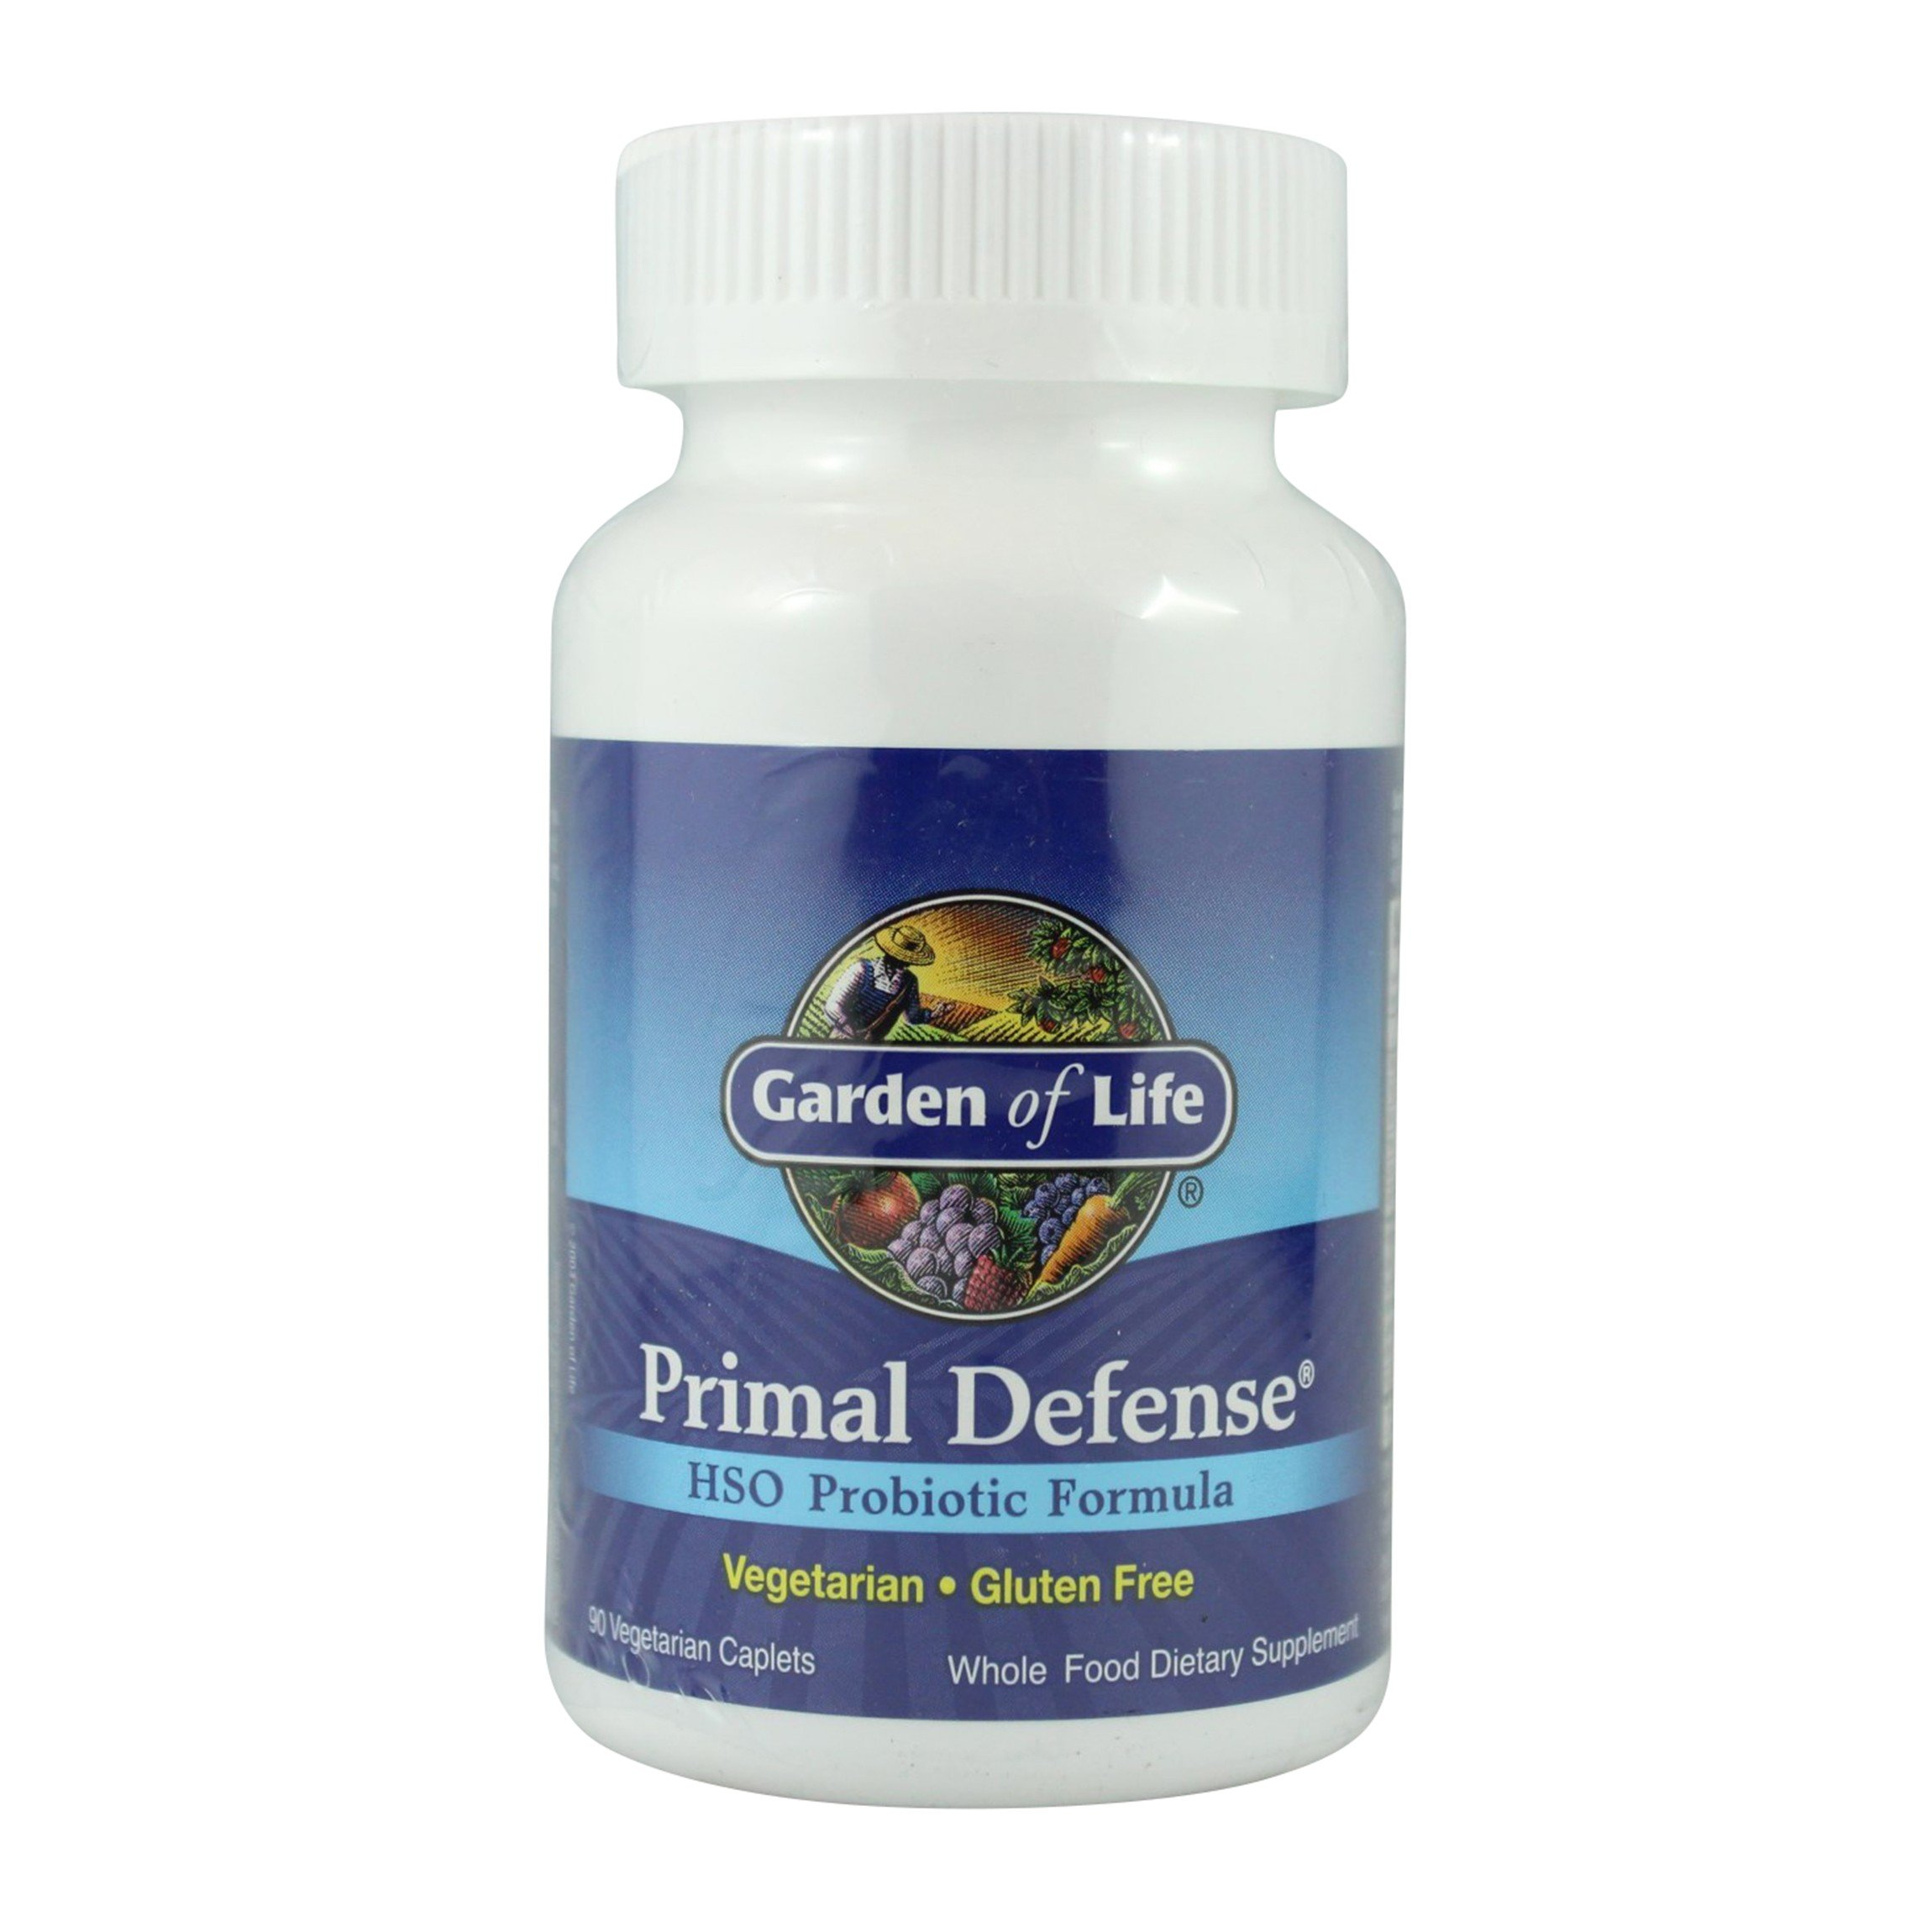 Garden Of Life Probiotics Primal Defense Helps Restore Your Body's Natural Balance